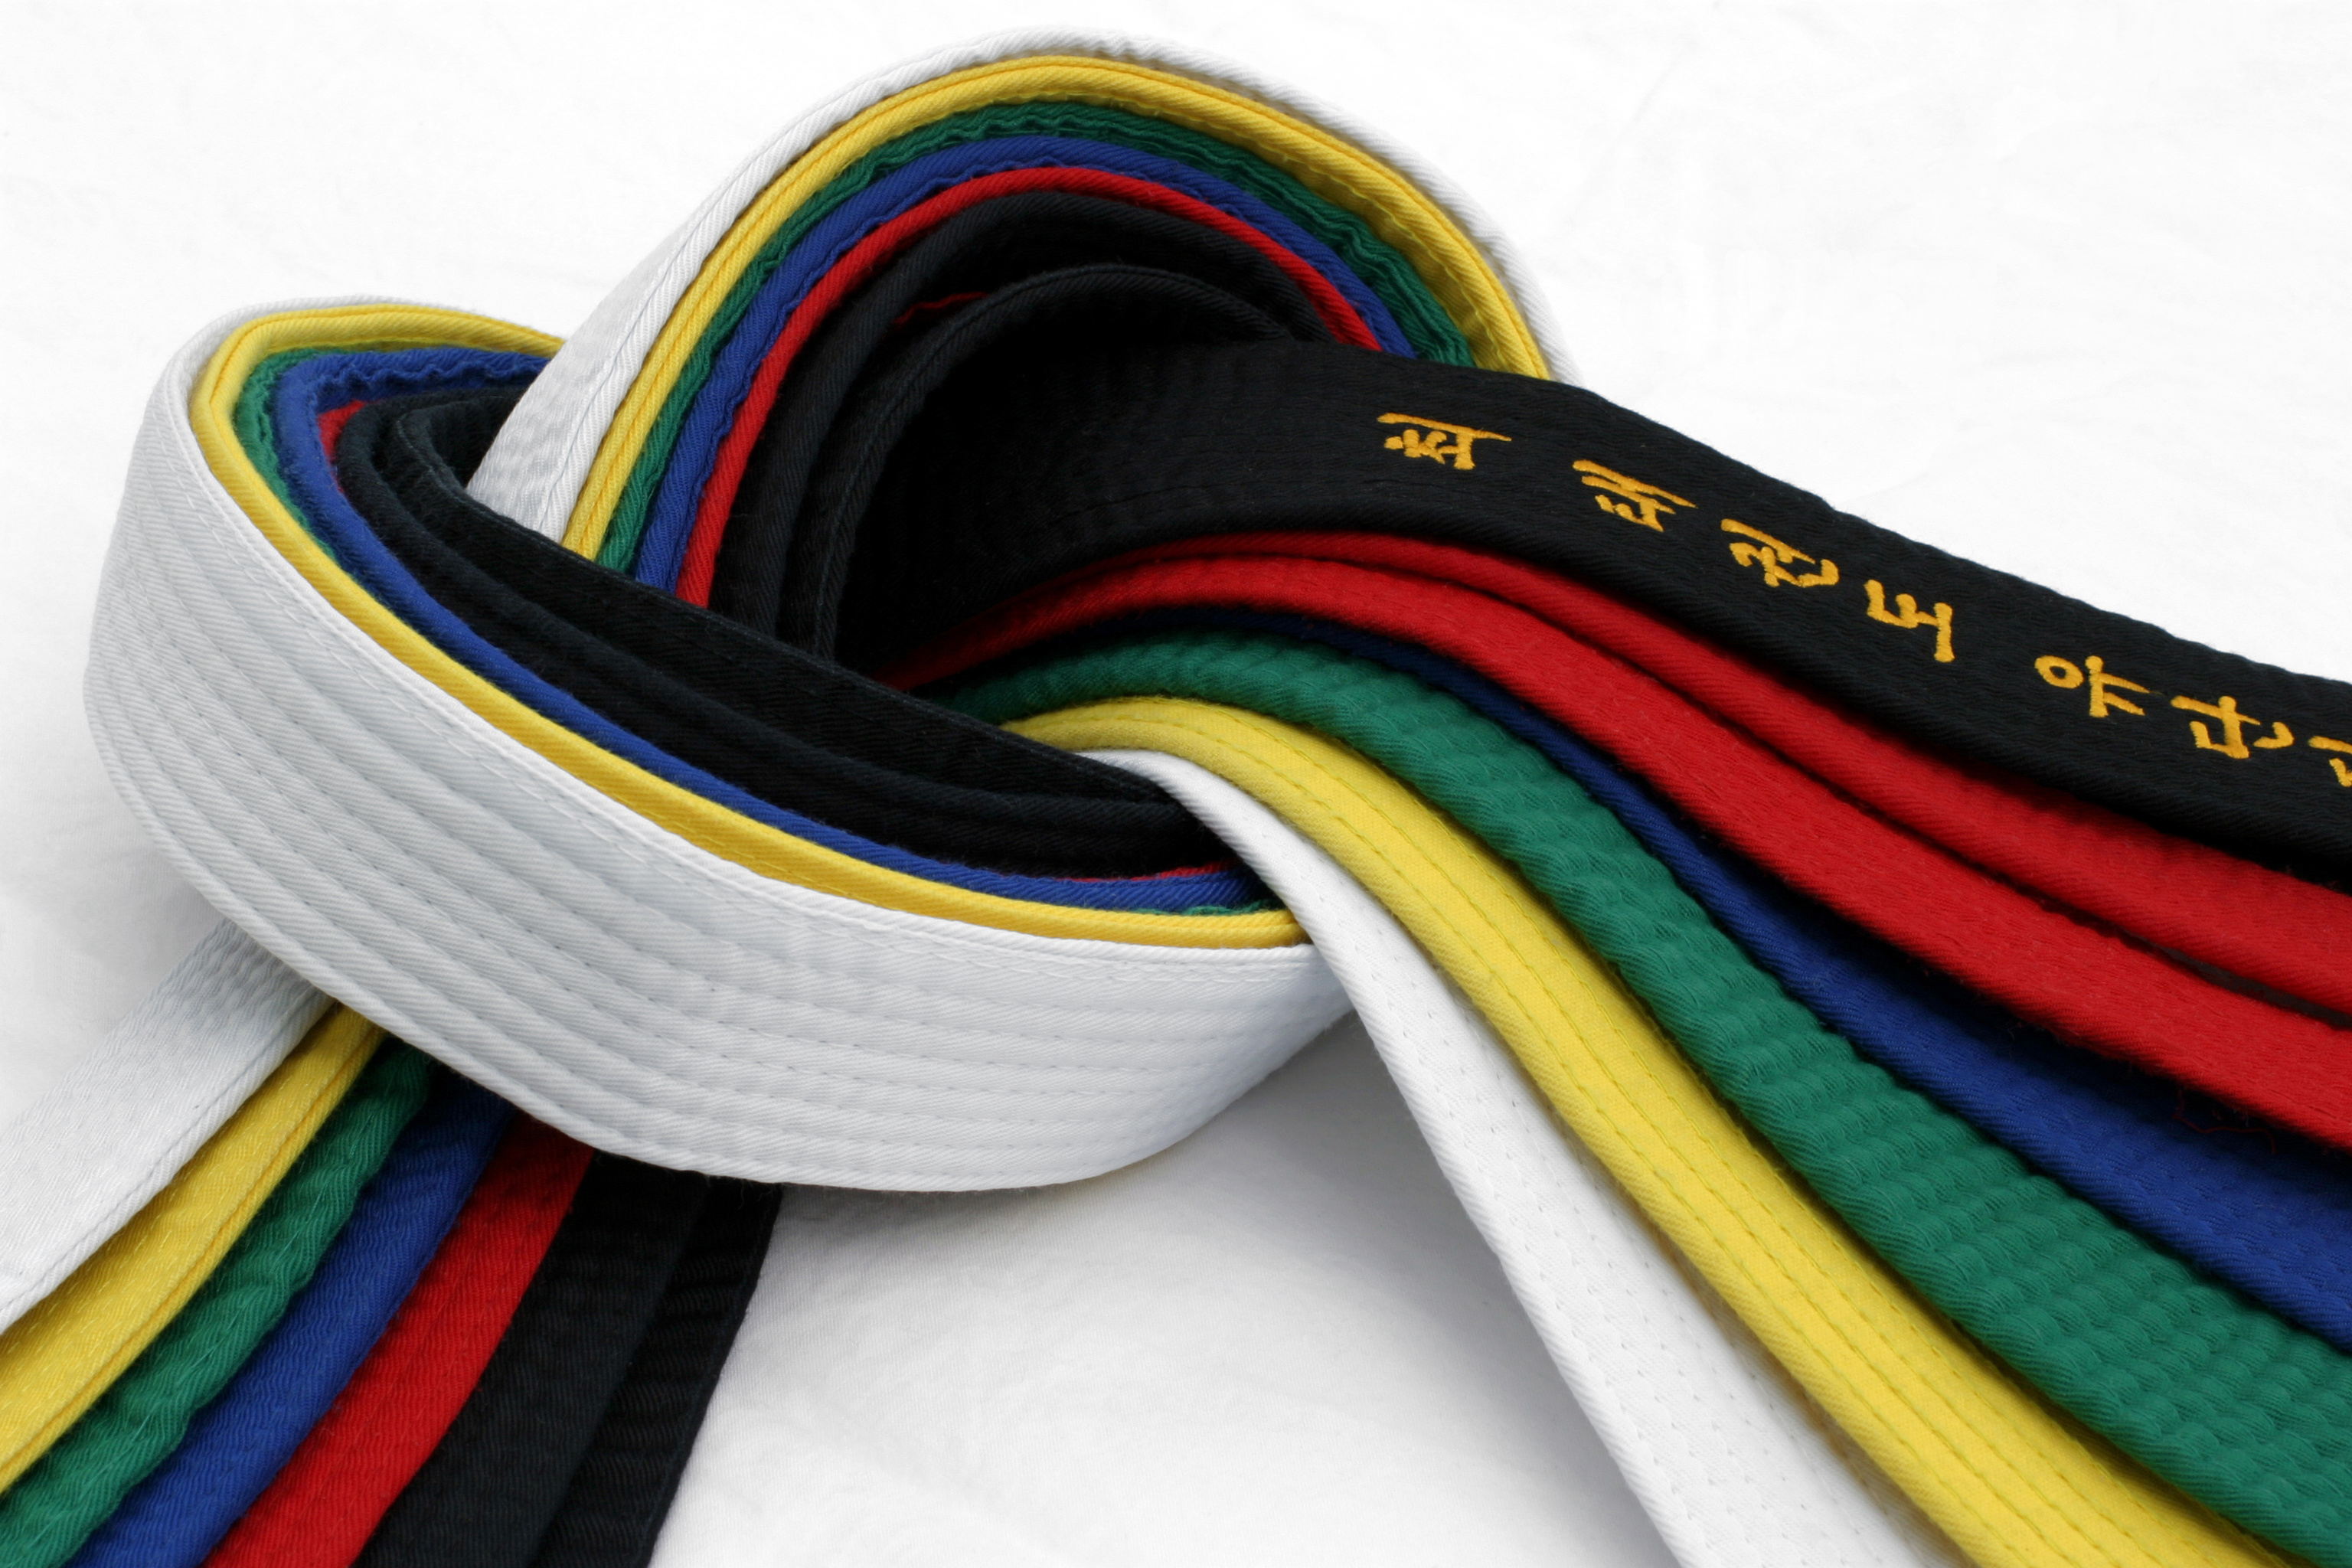 Art color rijeka - As You May Already Know The Grading And Ranking Of The Martial Arts Belt Vary Depending On Skills And Styles However For All Disciplines It Typically